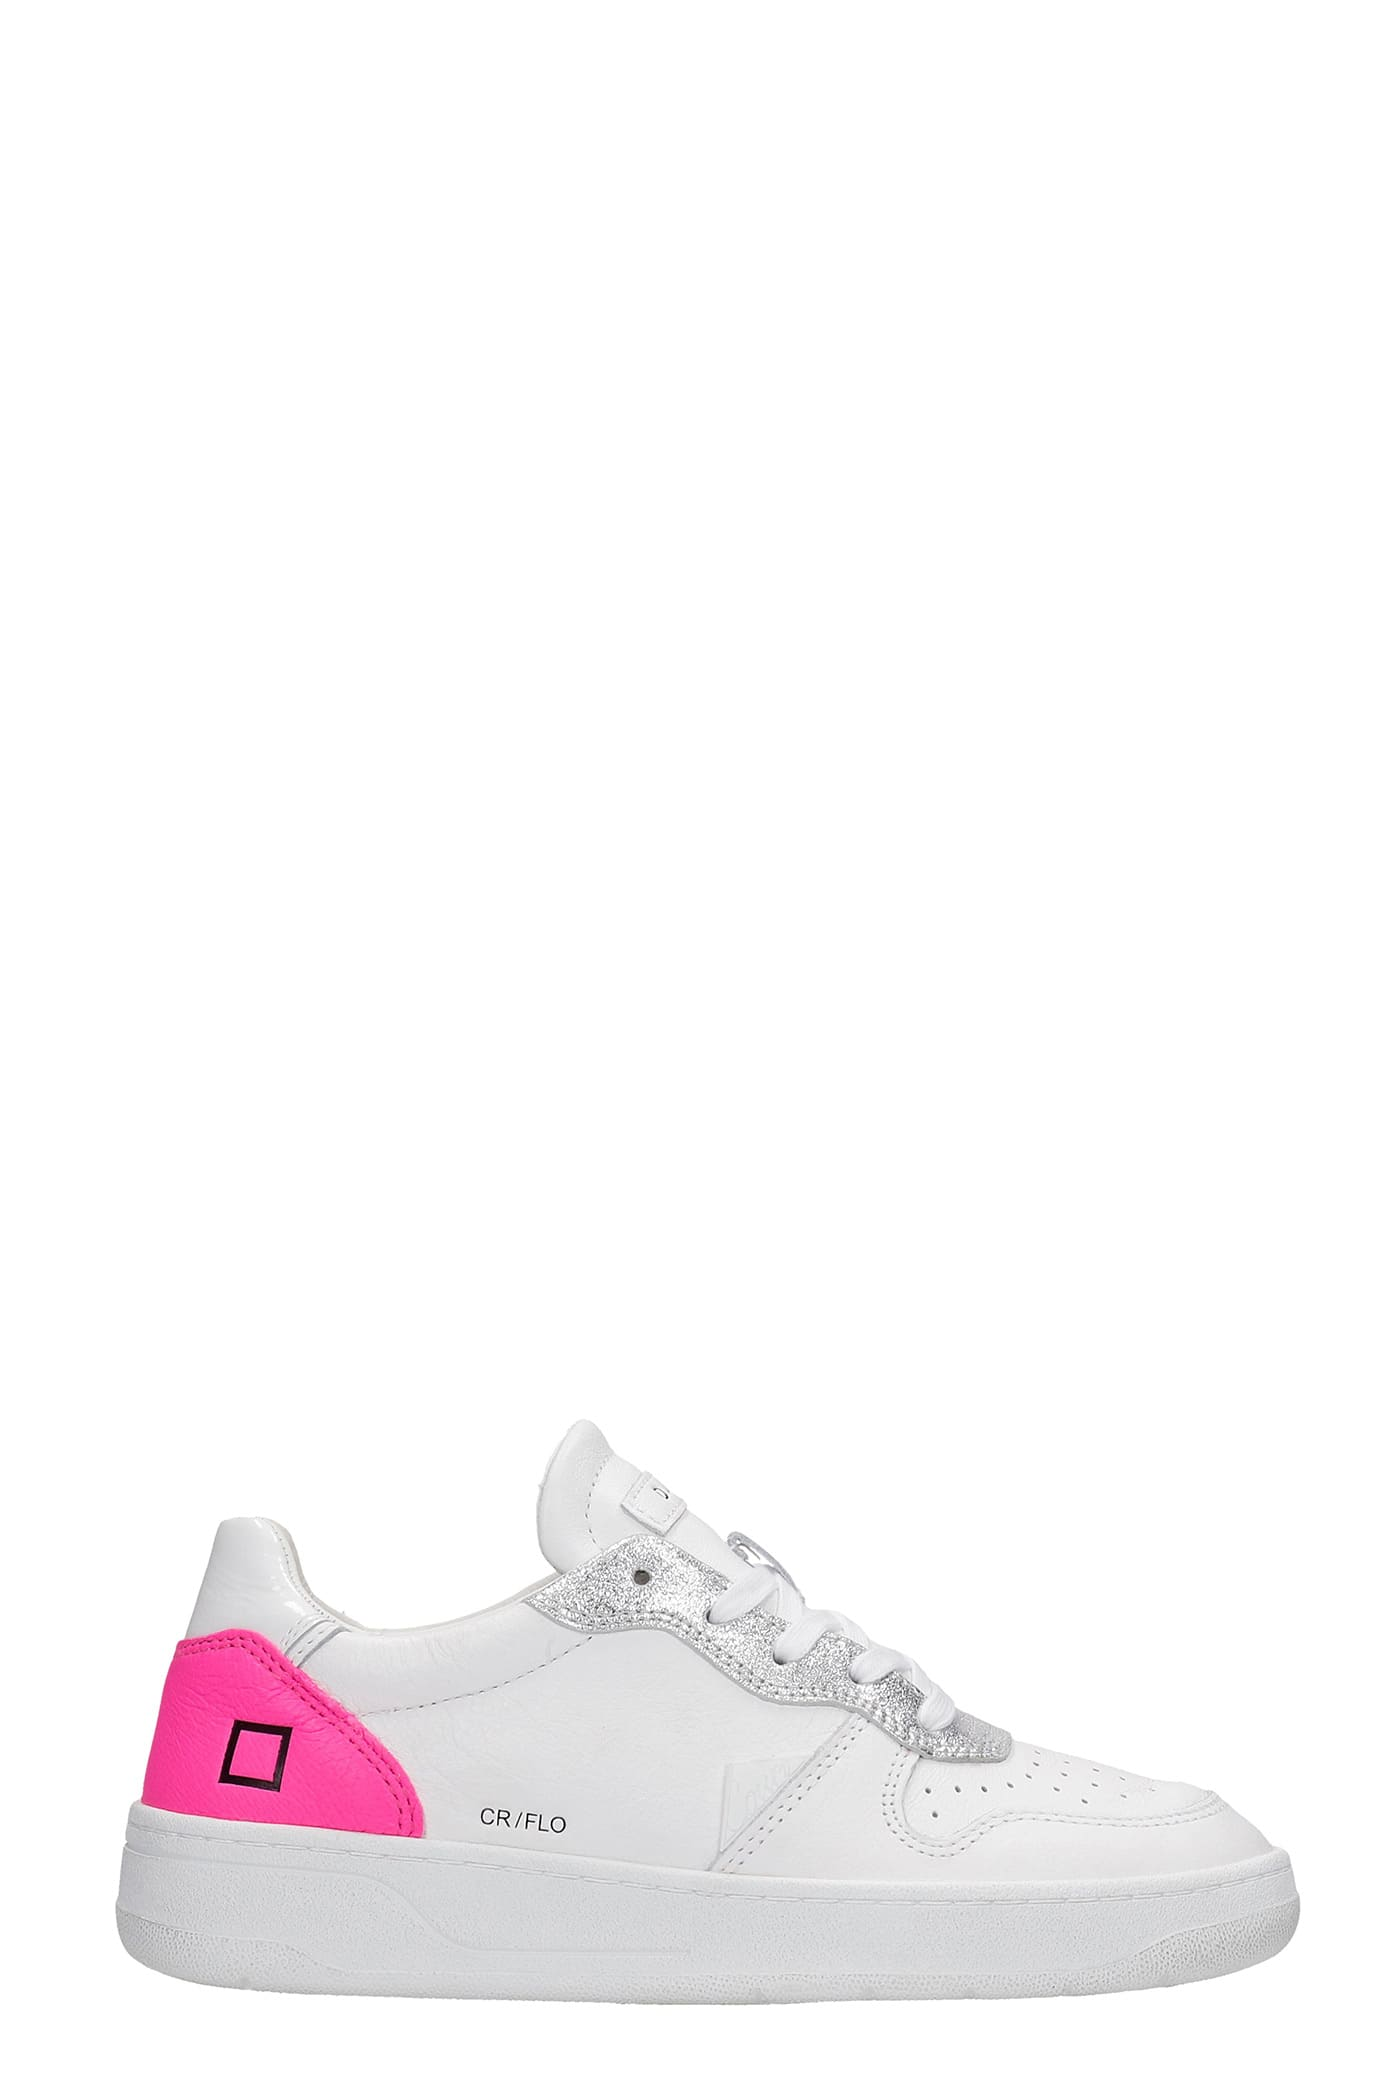 D.a.t.e. Low tops COURT SNEAKERS IN WHITE LEATHER